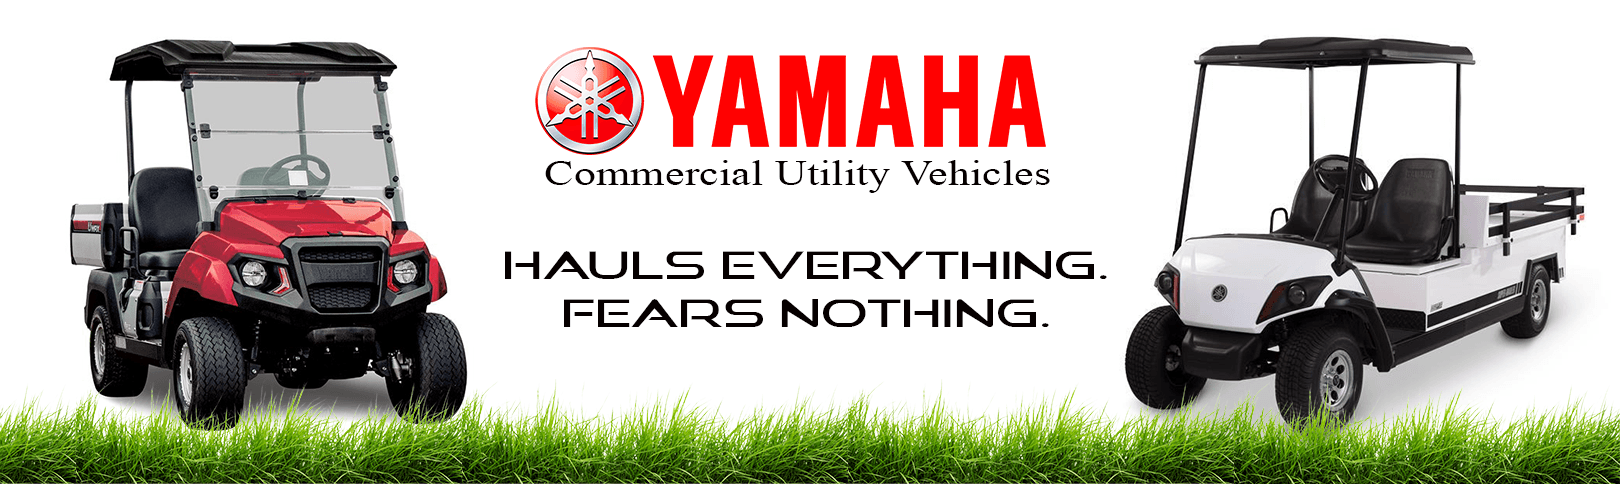 Yamaha Commercial Vehicle banner 1